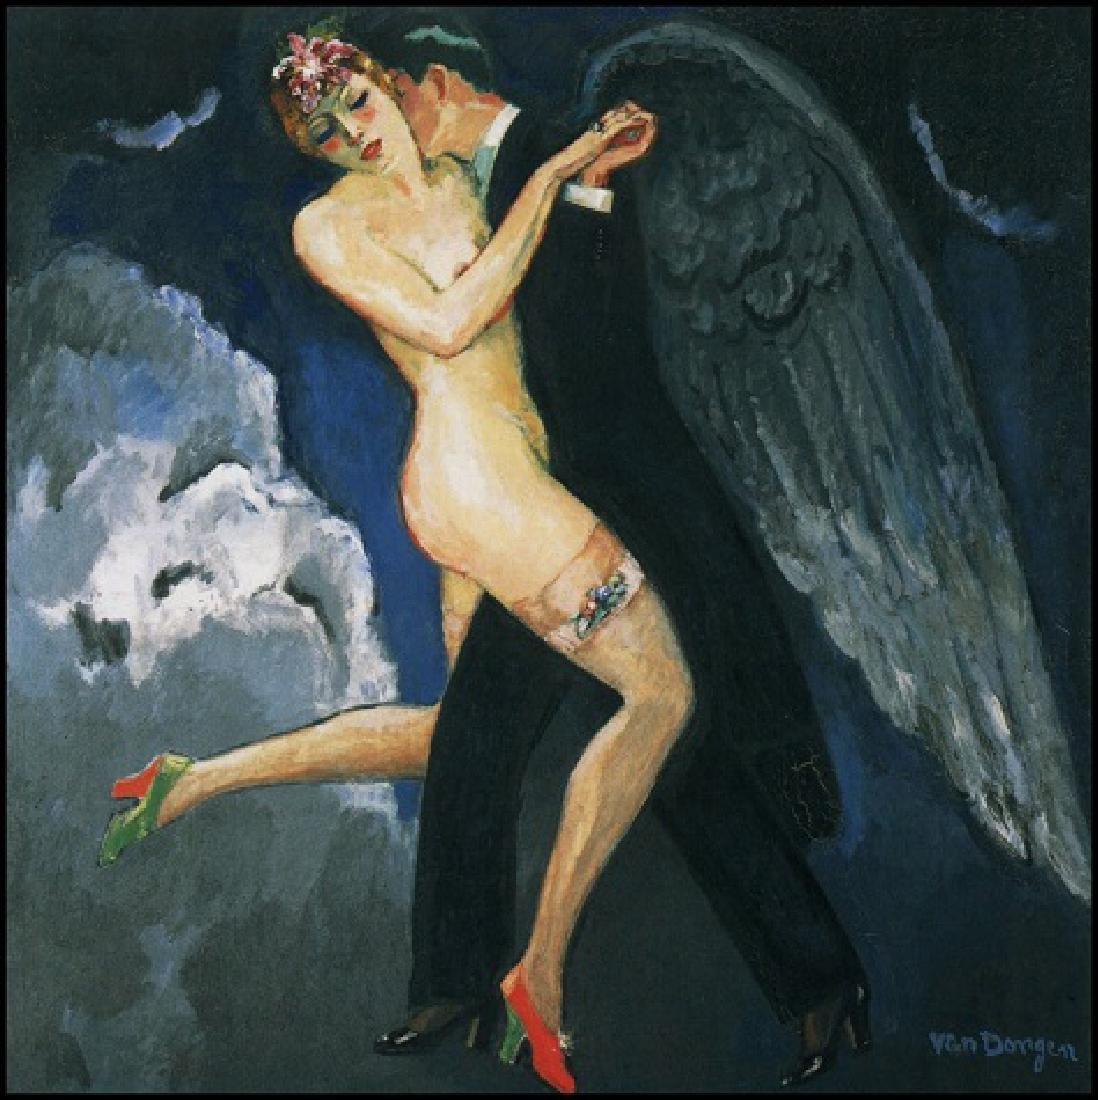 Oil Painting on Canvas, Kees Van Dongen